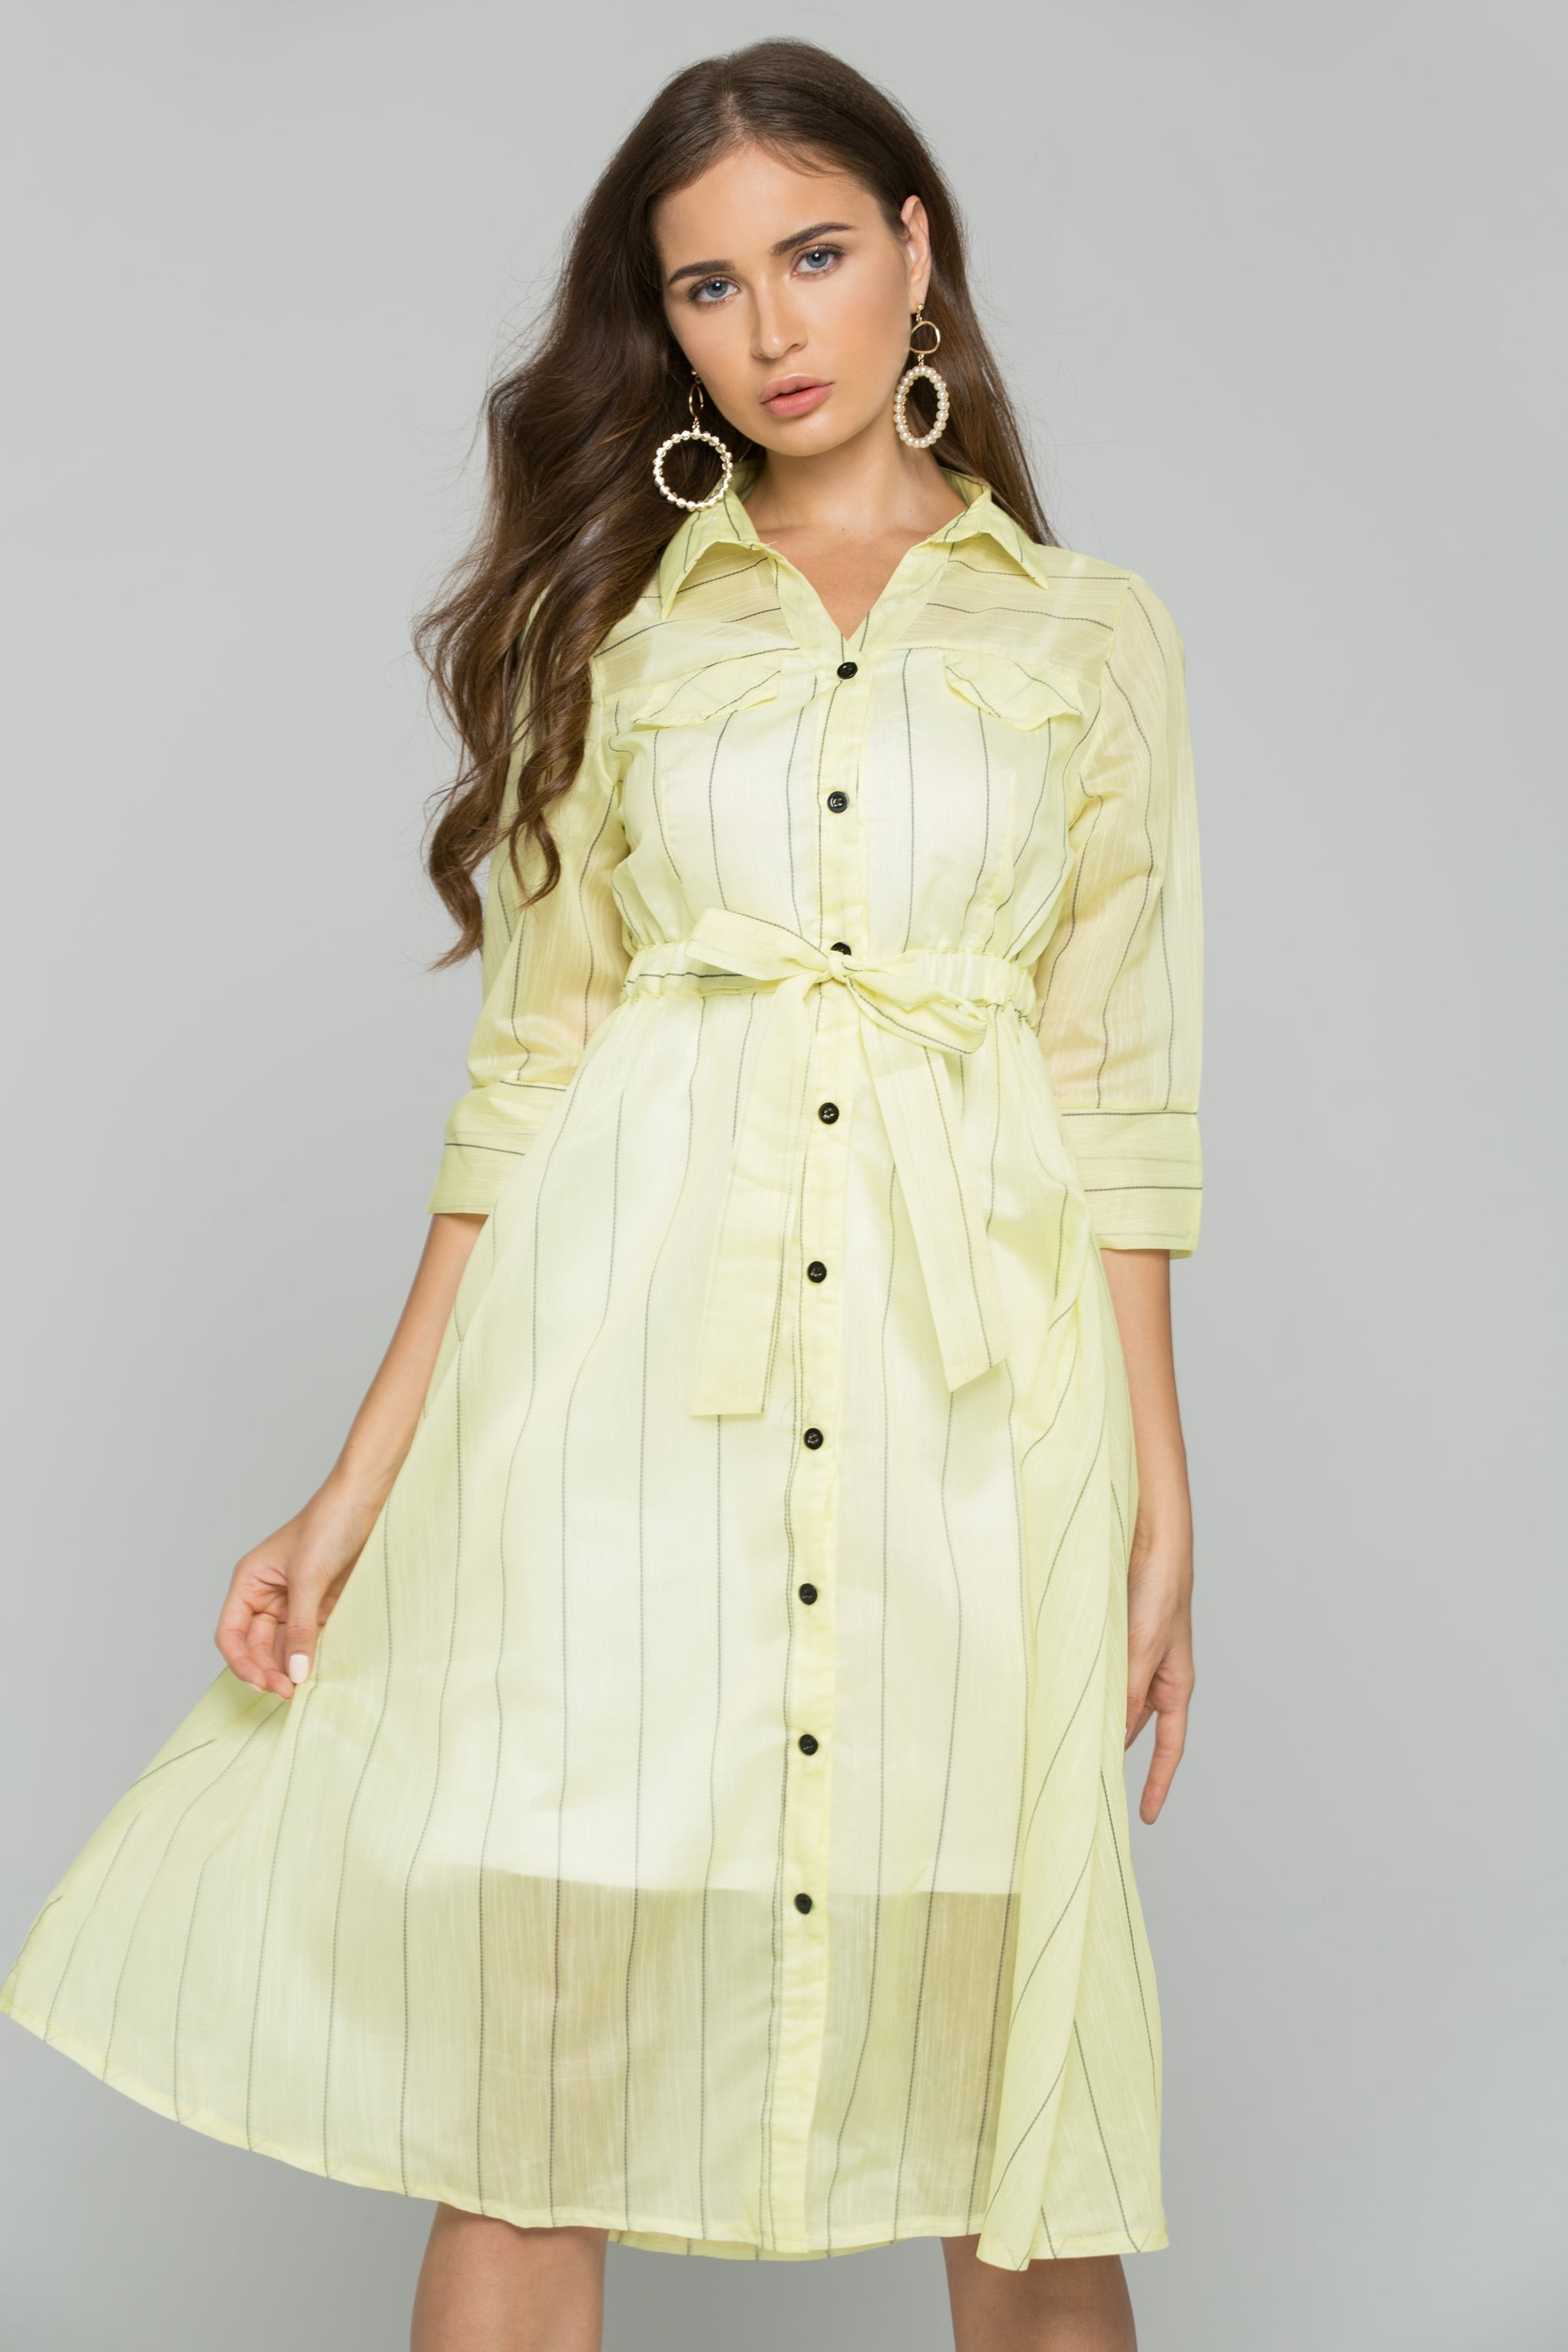 99c9d22739333 22 people are viewing this item right now. Yellow Cotton Striped Button-Down  Belt Strap Shirt Dress